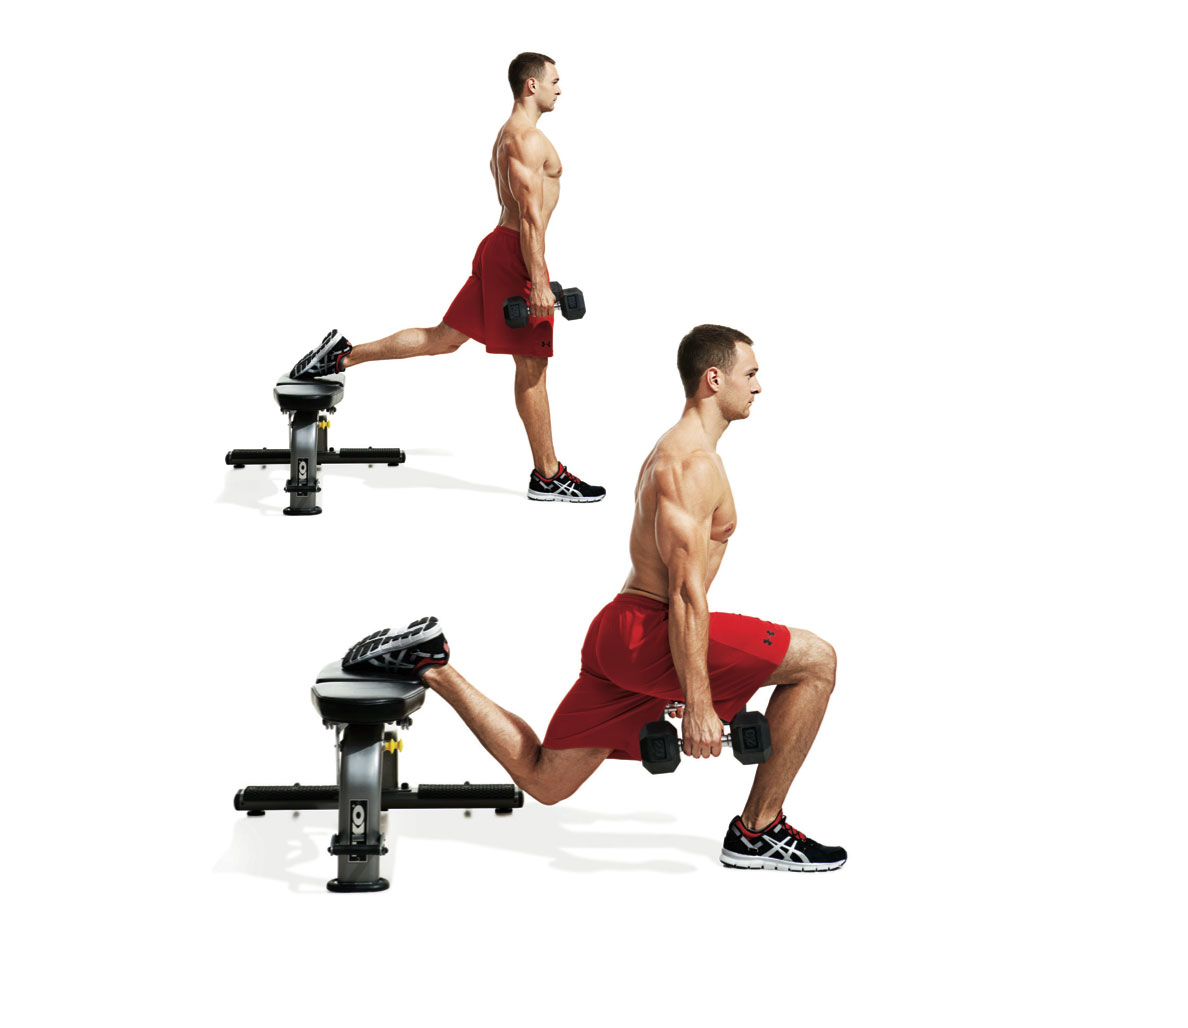 Dumbbell training for muscle growth